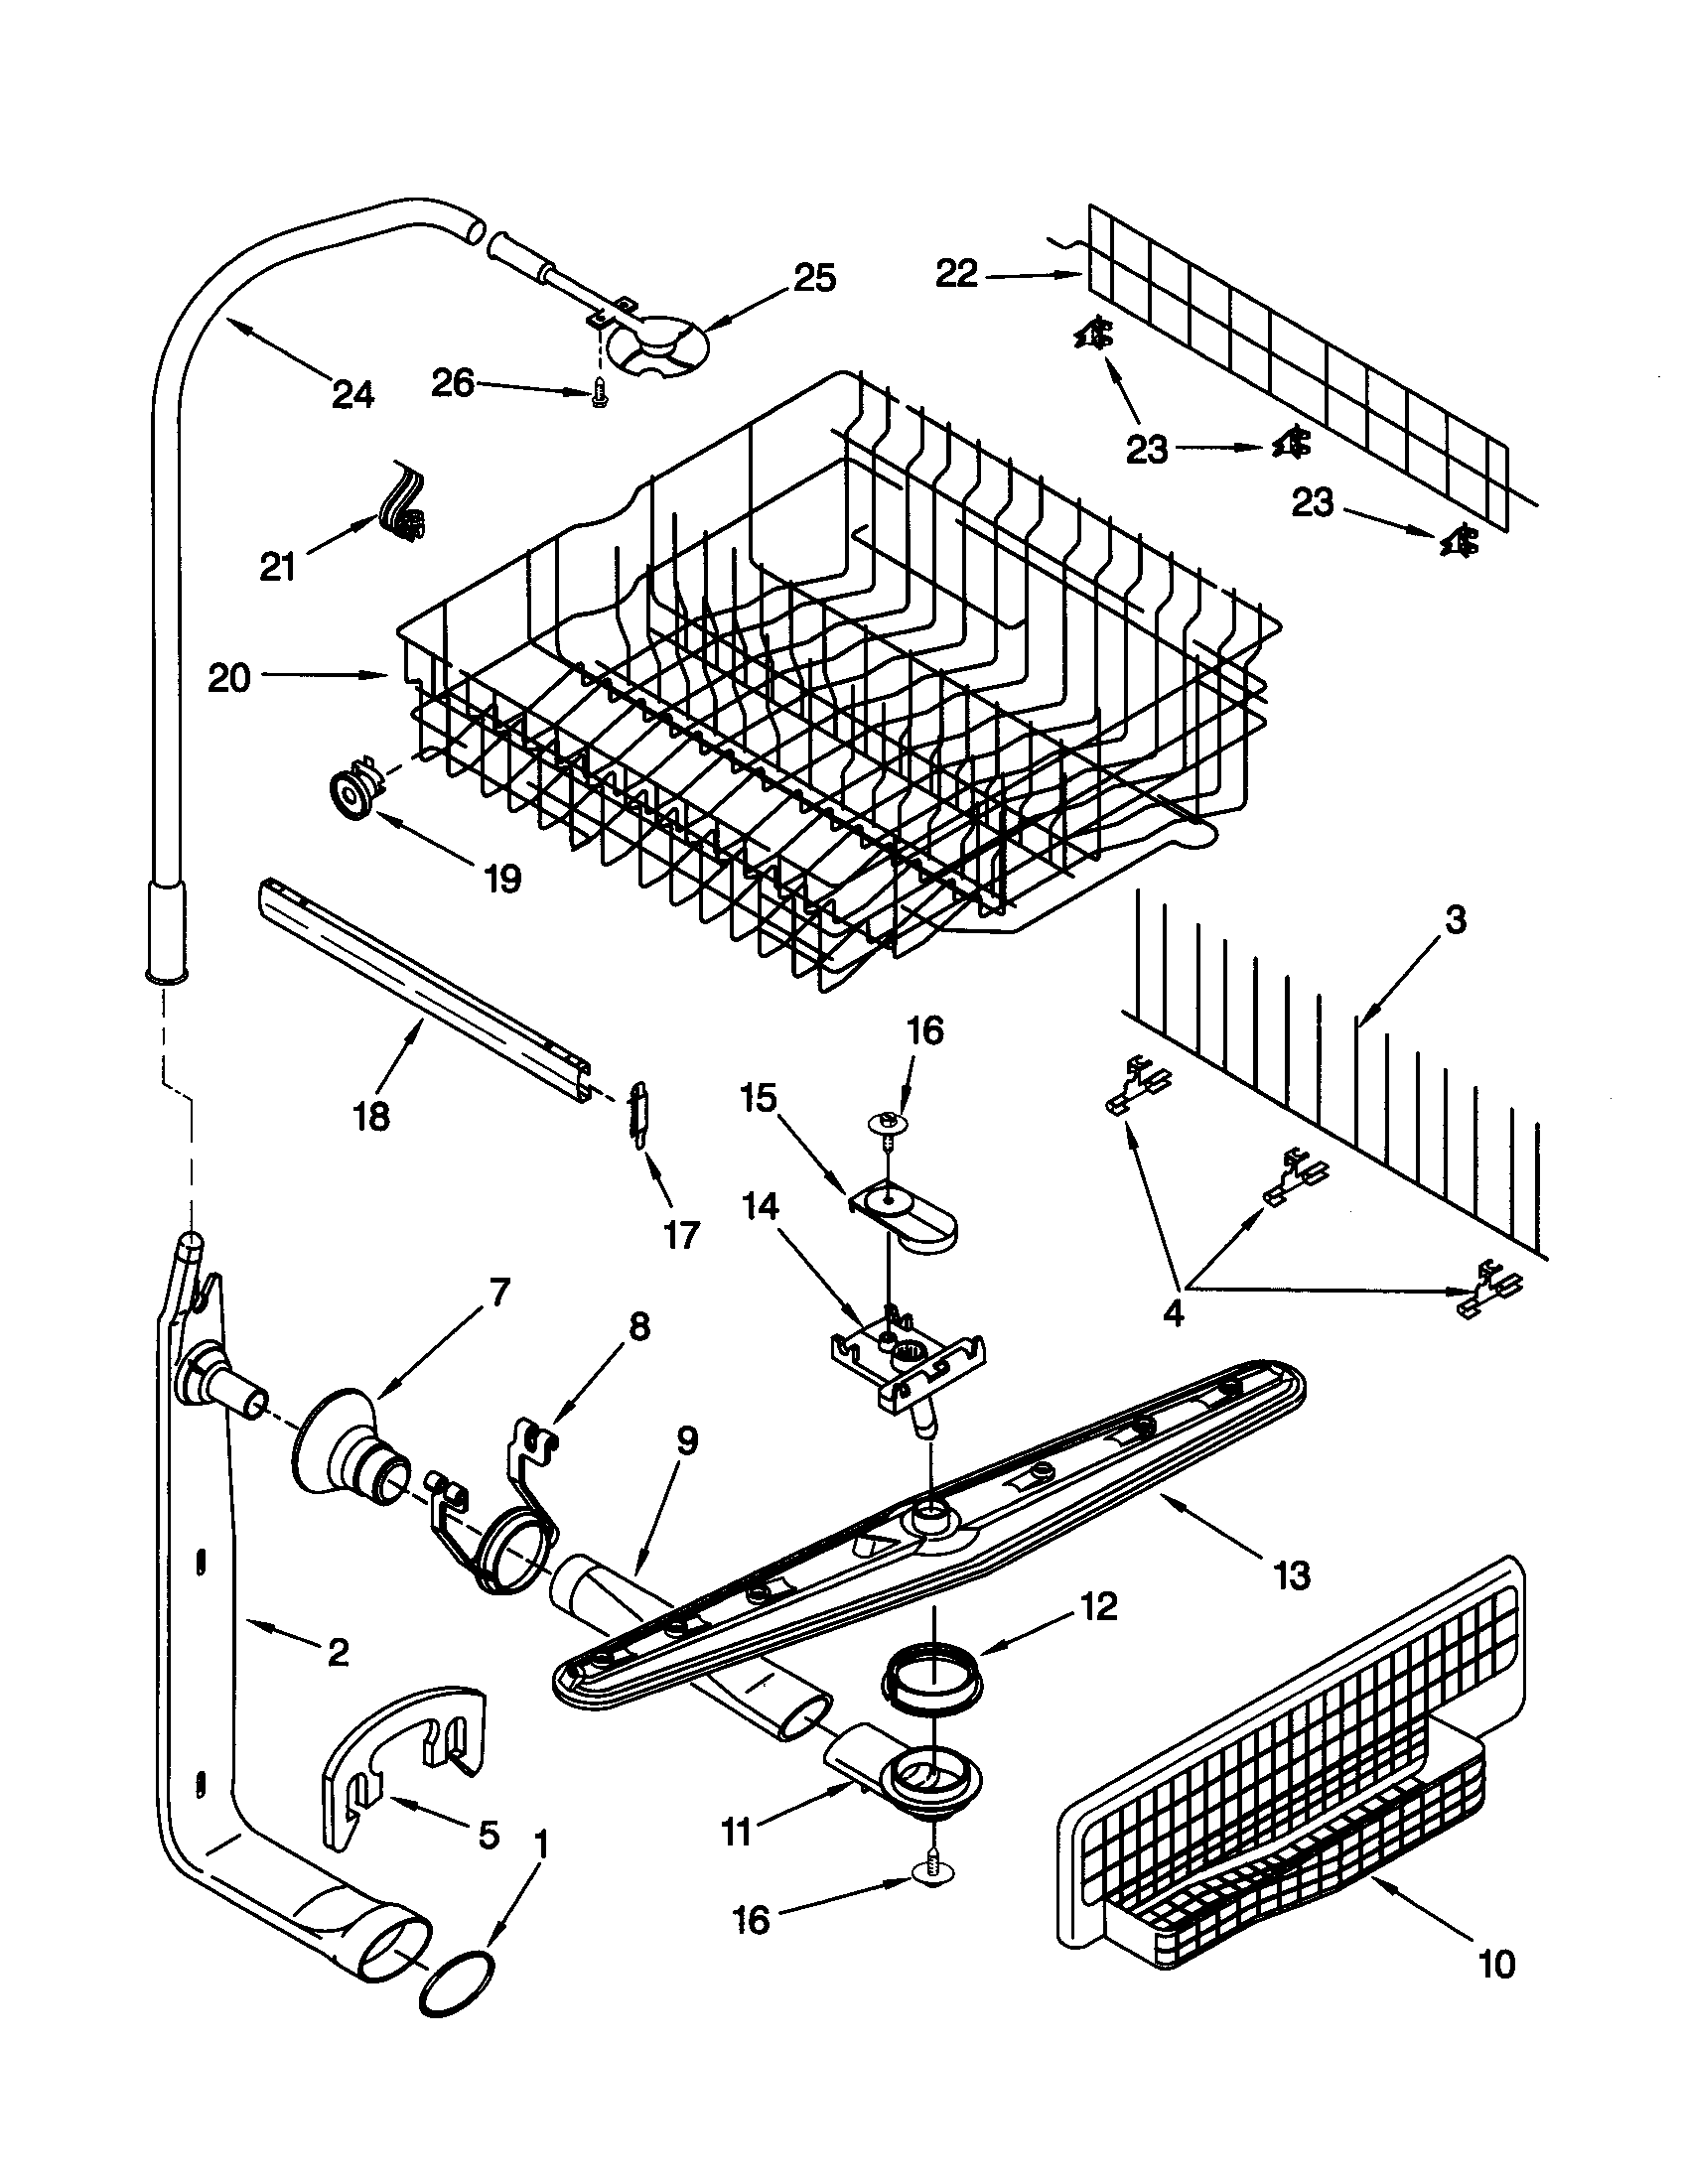 Kenmore Dishwasher Wiring Diagram from i.pinimg.com